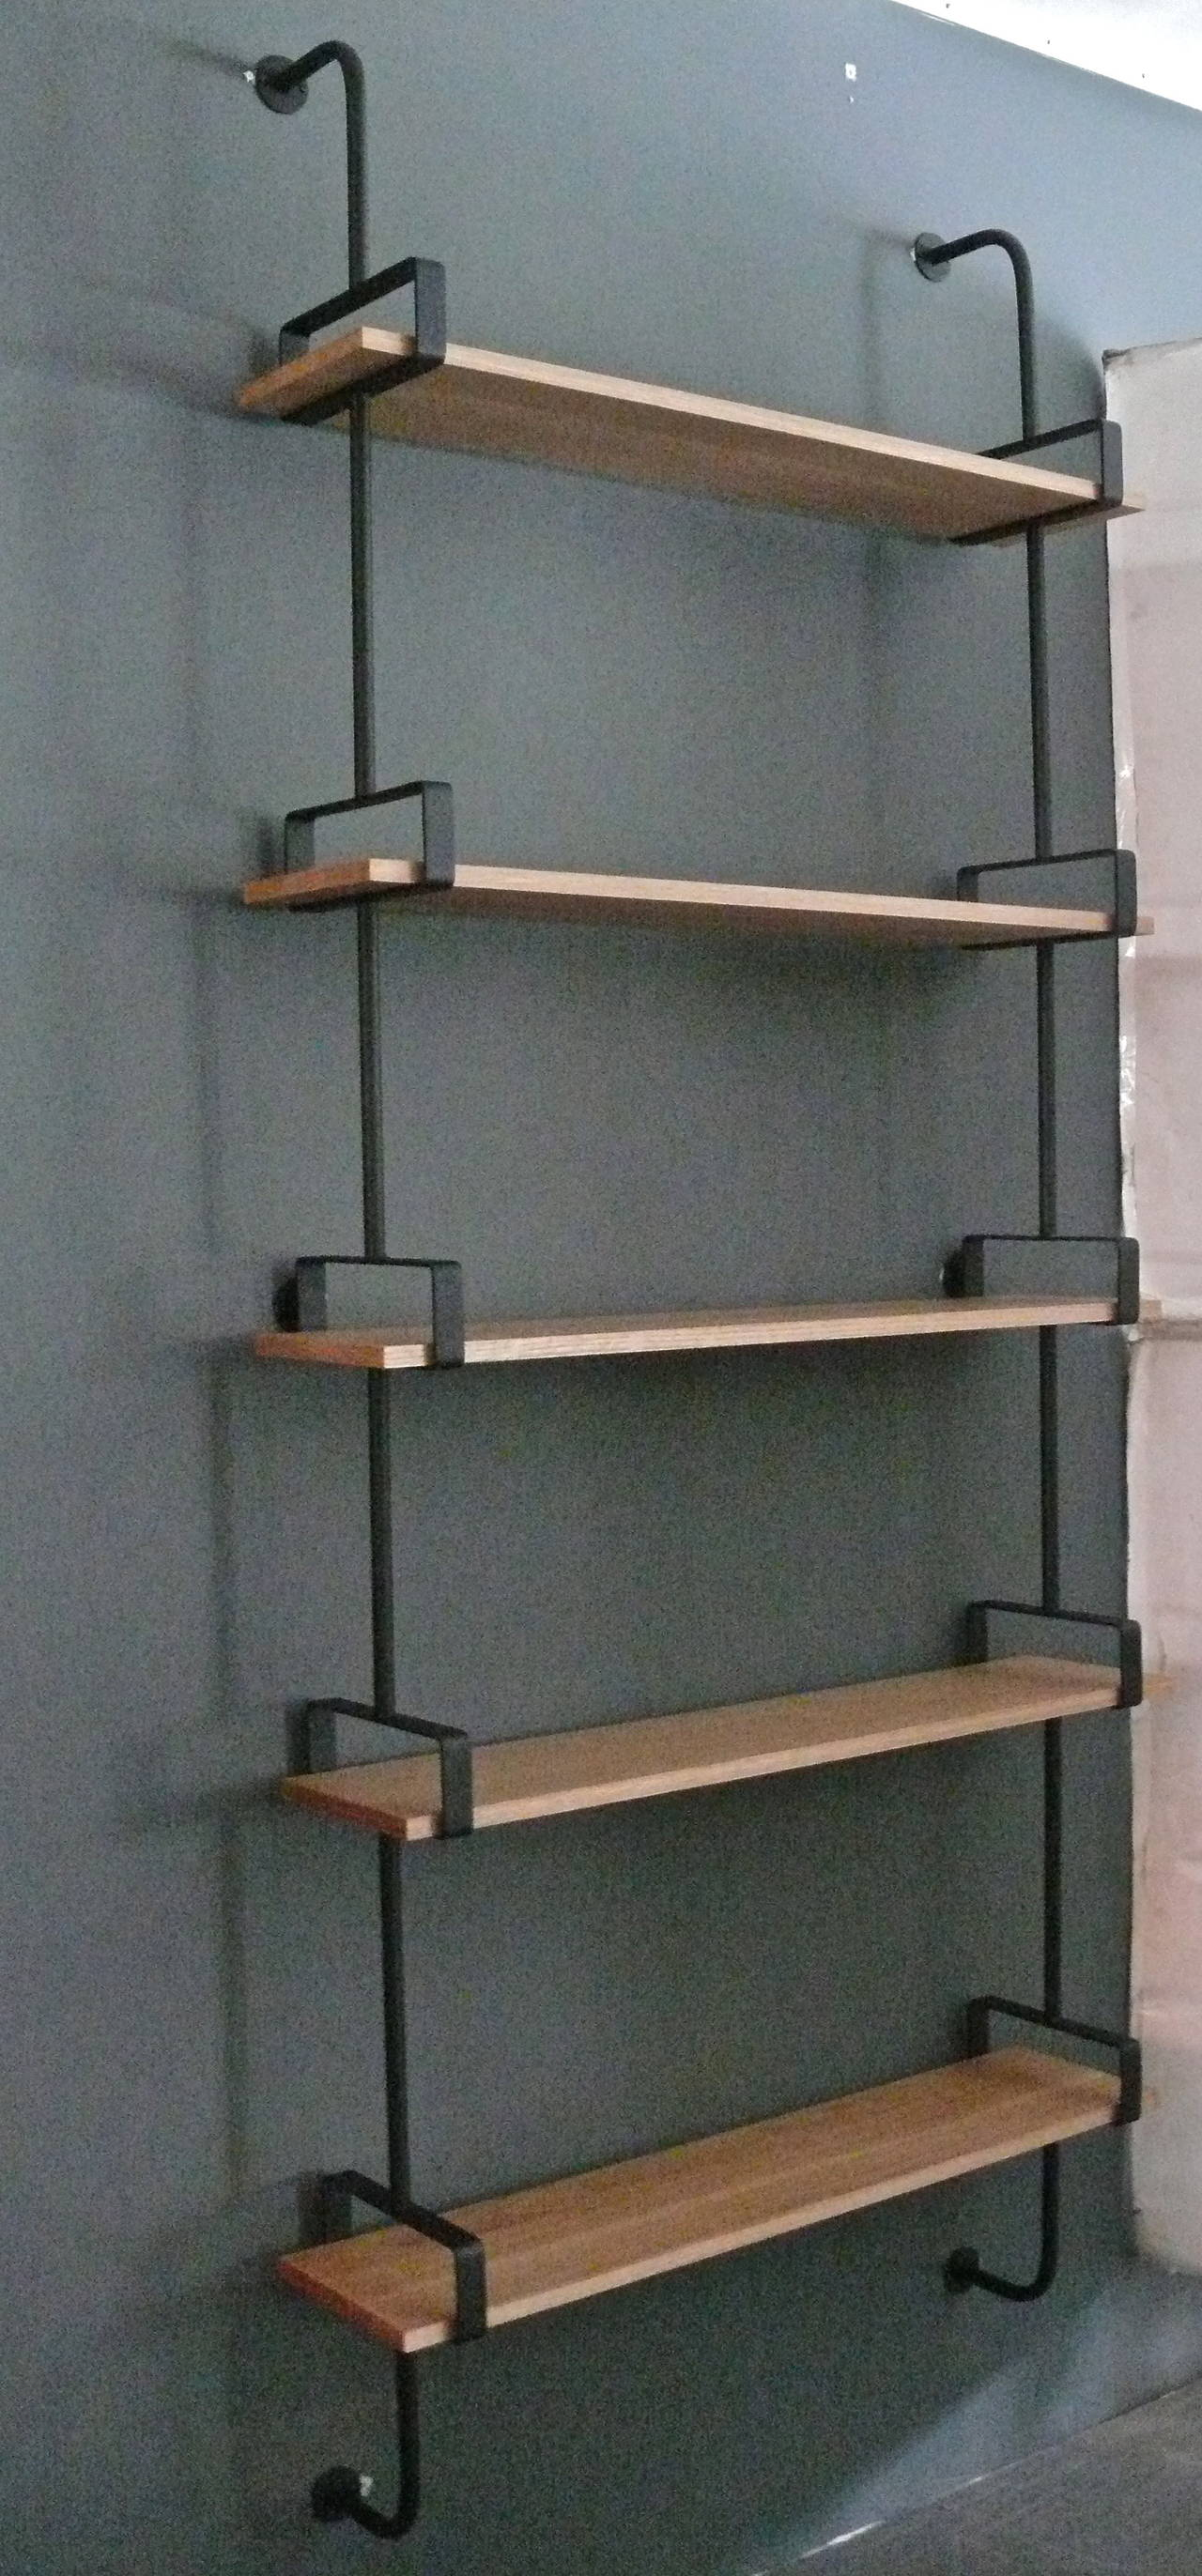 French Iron and Oak Wall Shelves 3